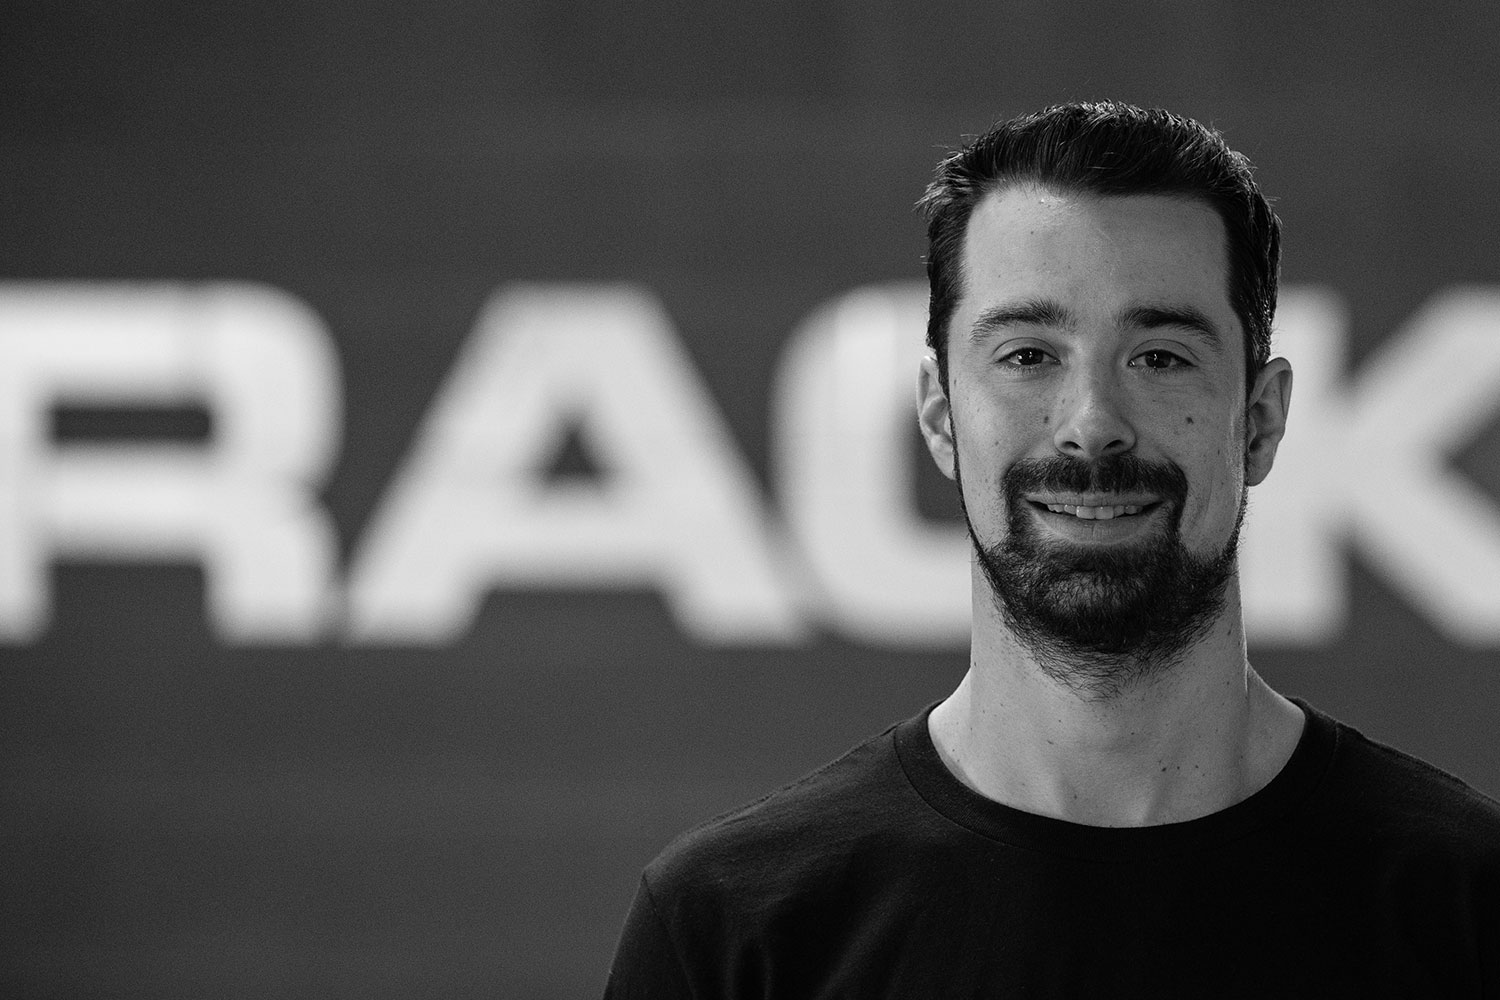 Marc Giroux General Manager - Marc is our gym manager and is happy to answer any questions related to our services and current offers. Need help? Just ask!